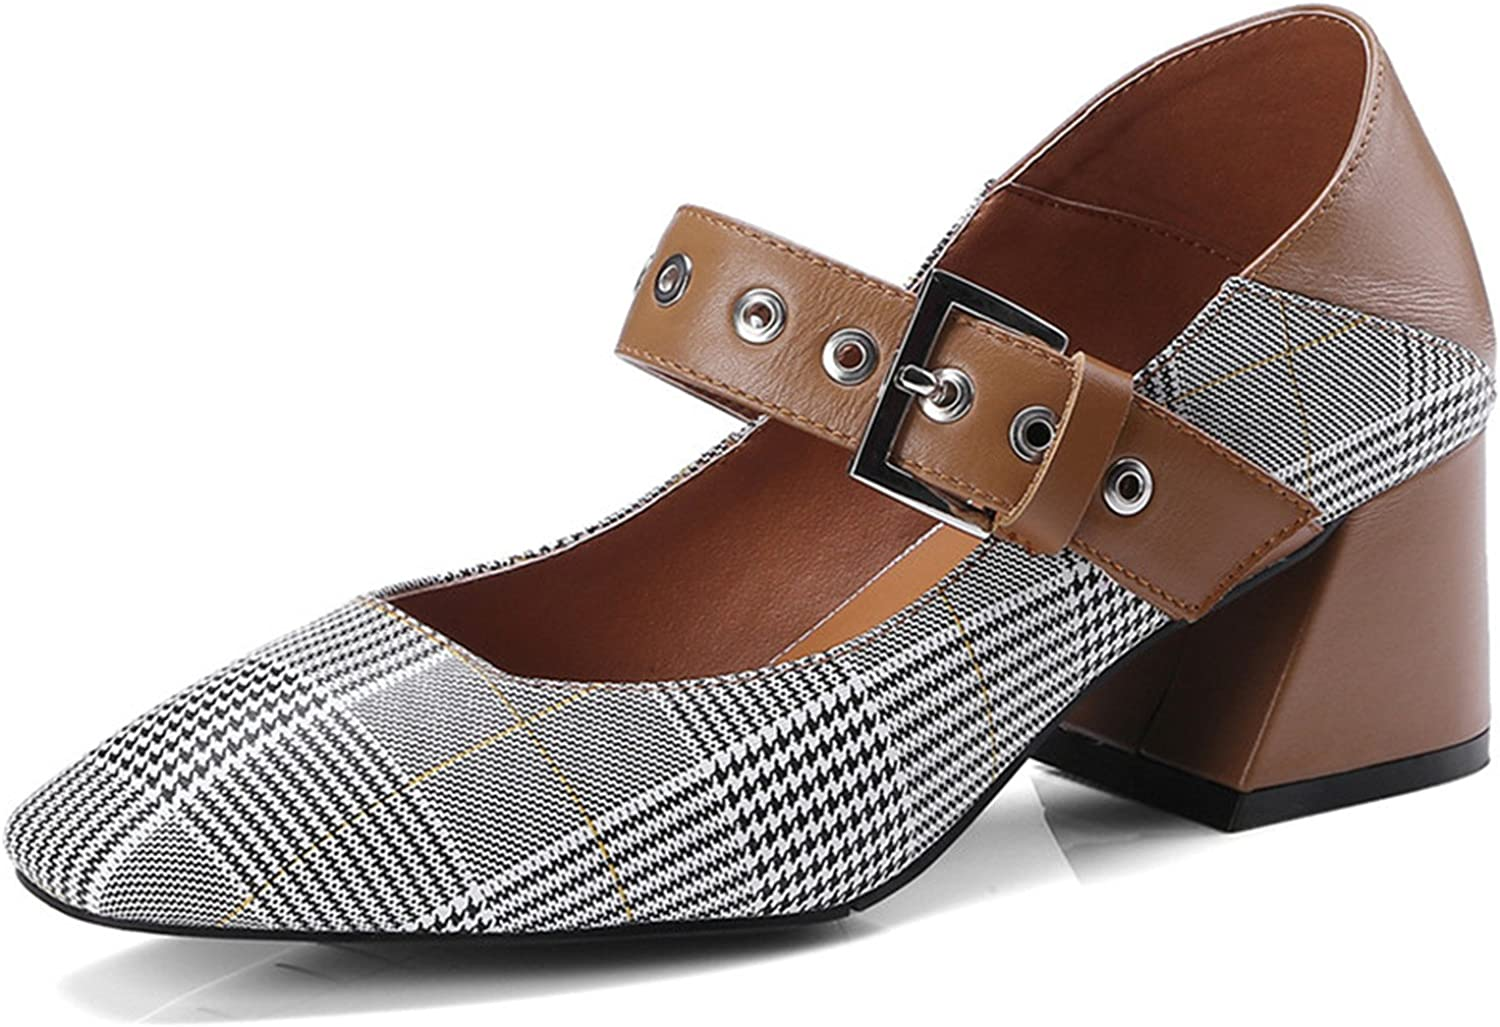 Gome-z Fashion Plaid Fabric+Mary Janes shoes Thick High Heeled Women Pumps Buckled 43 Woman Pumps Mary Janes